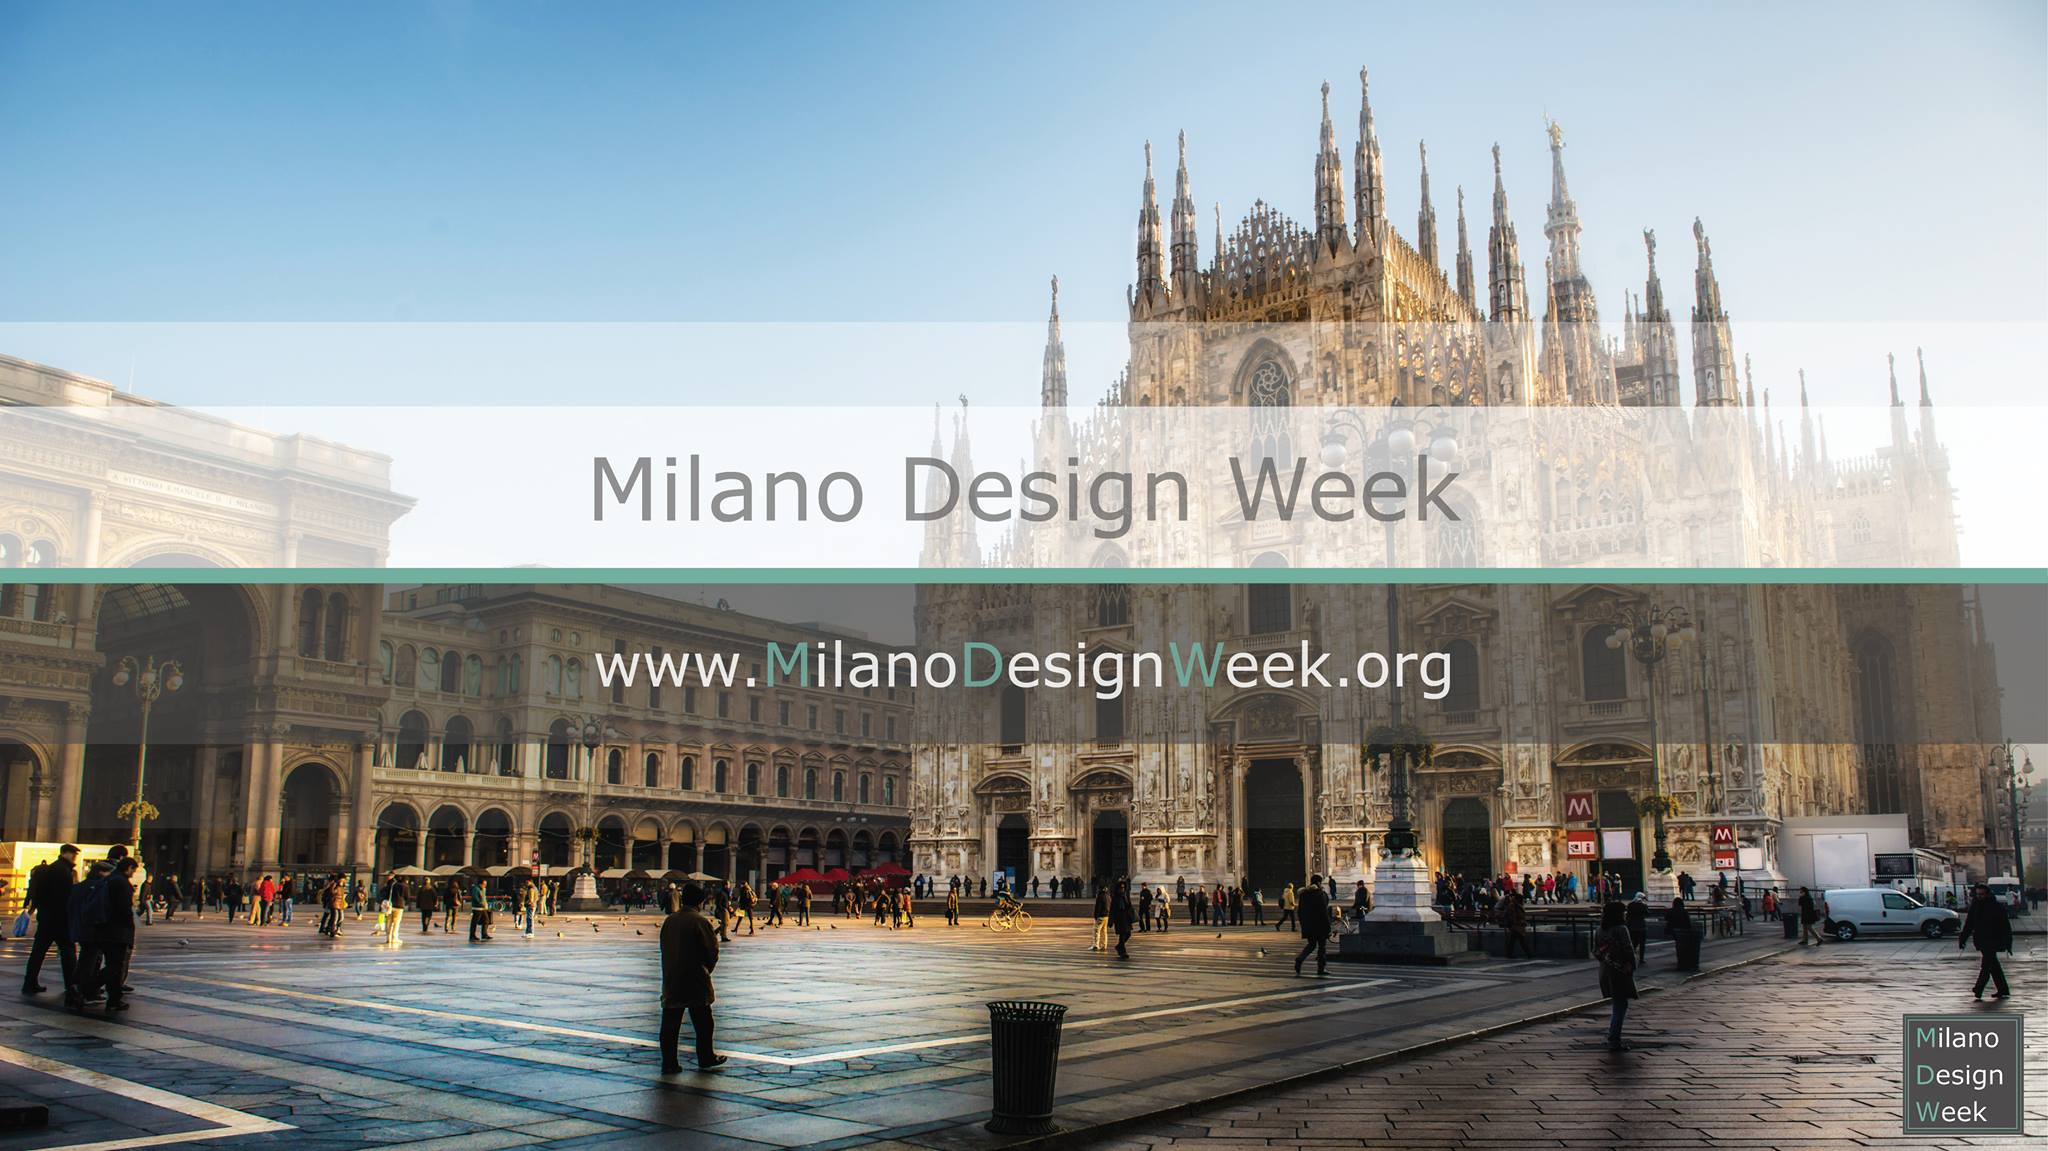 Isaloni 2016: What to see at Tortona Design Week lake hotels in italy Discover The Best Lake Hotels In Italy What to see at Tortona Design Week lake hotels in italy Discover The Best Lake Hotels In Italy What to see at Tortona Design Week